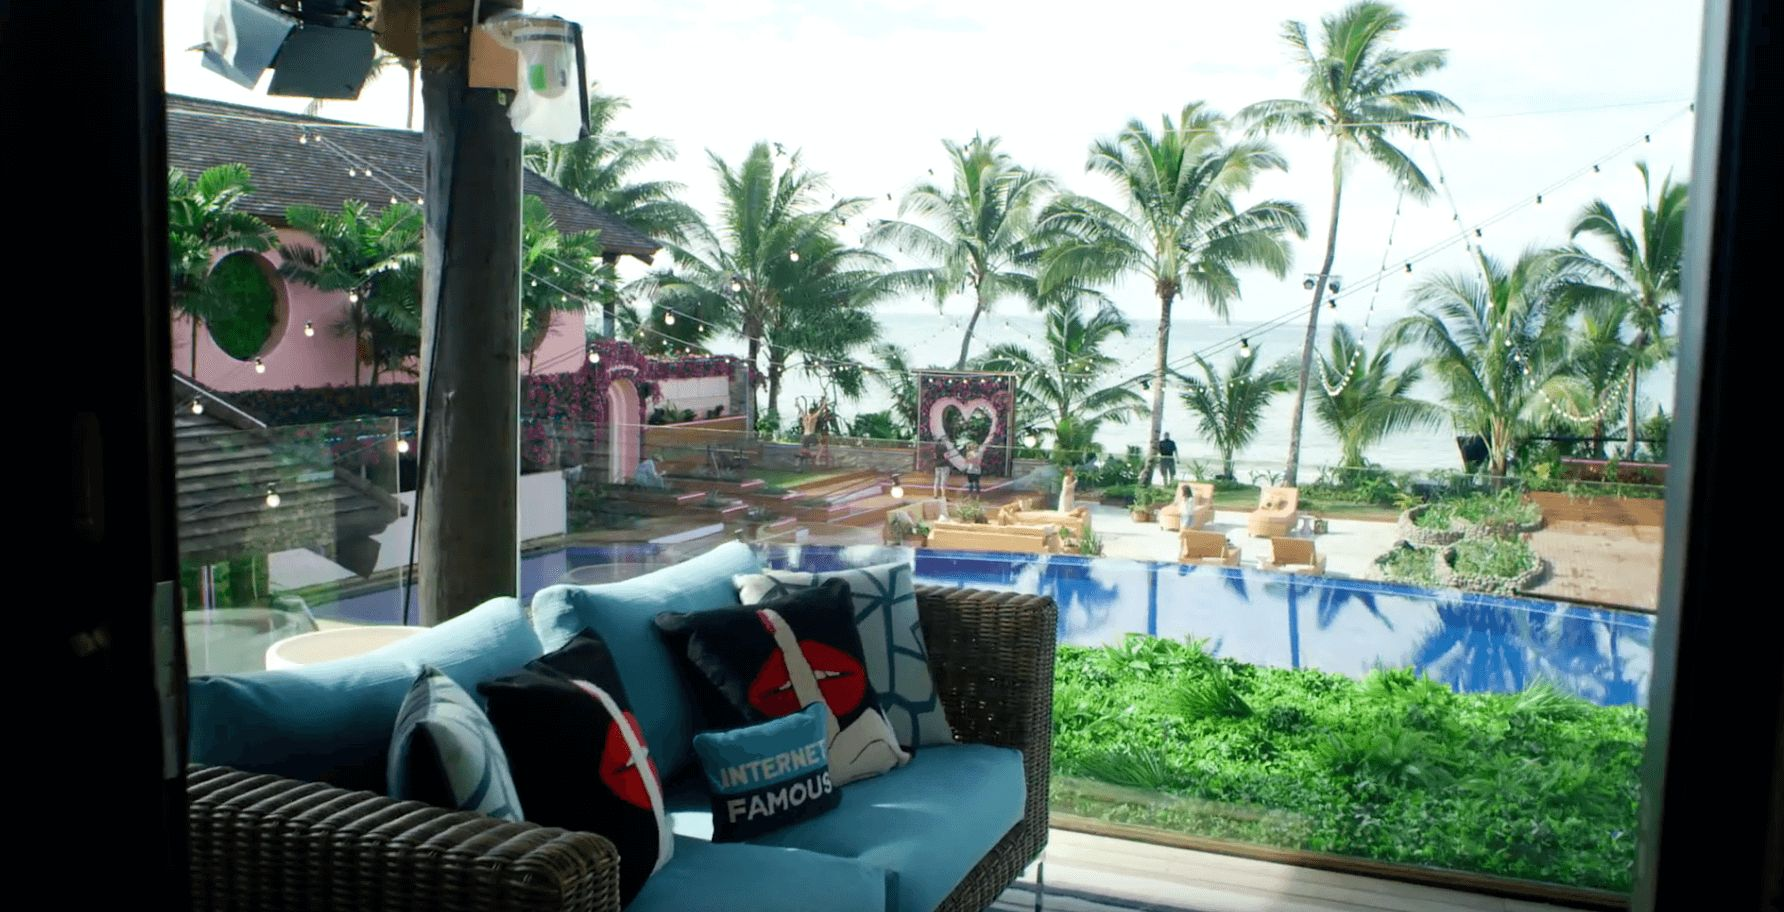 Image may contain: Love Island USA villa, Love Island USA, villa, Love Island, Fiji, view, ocean, sea, CBS, Interior Design, Indoors, Couch, Resort, Hotel, Building, Cushion, Furniture